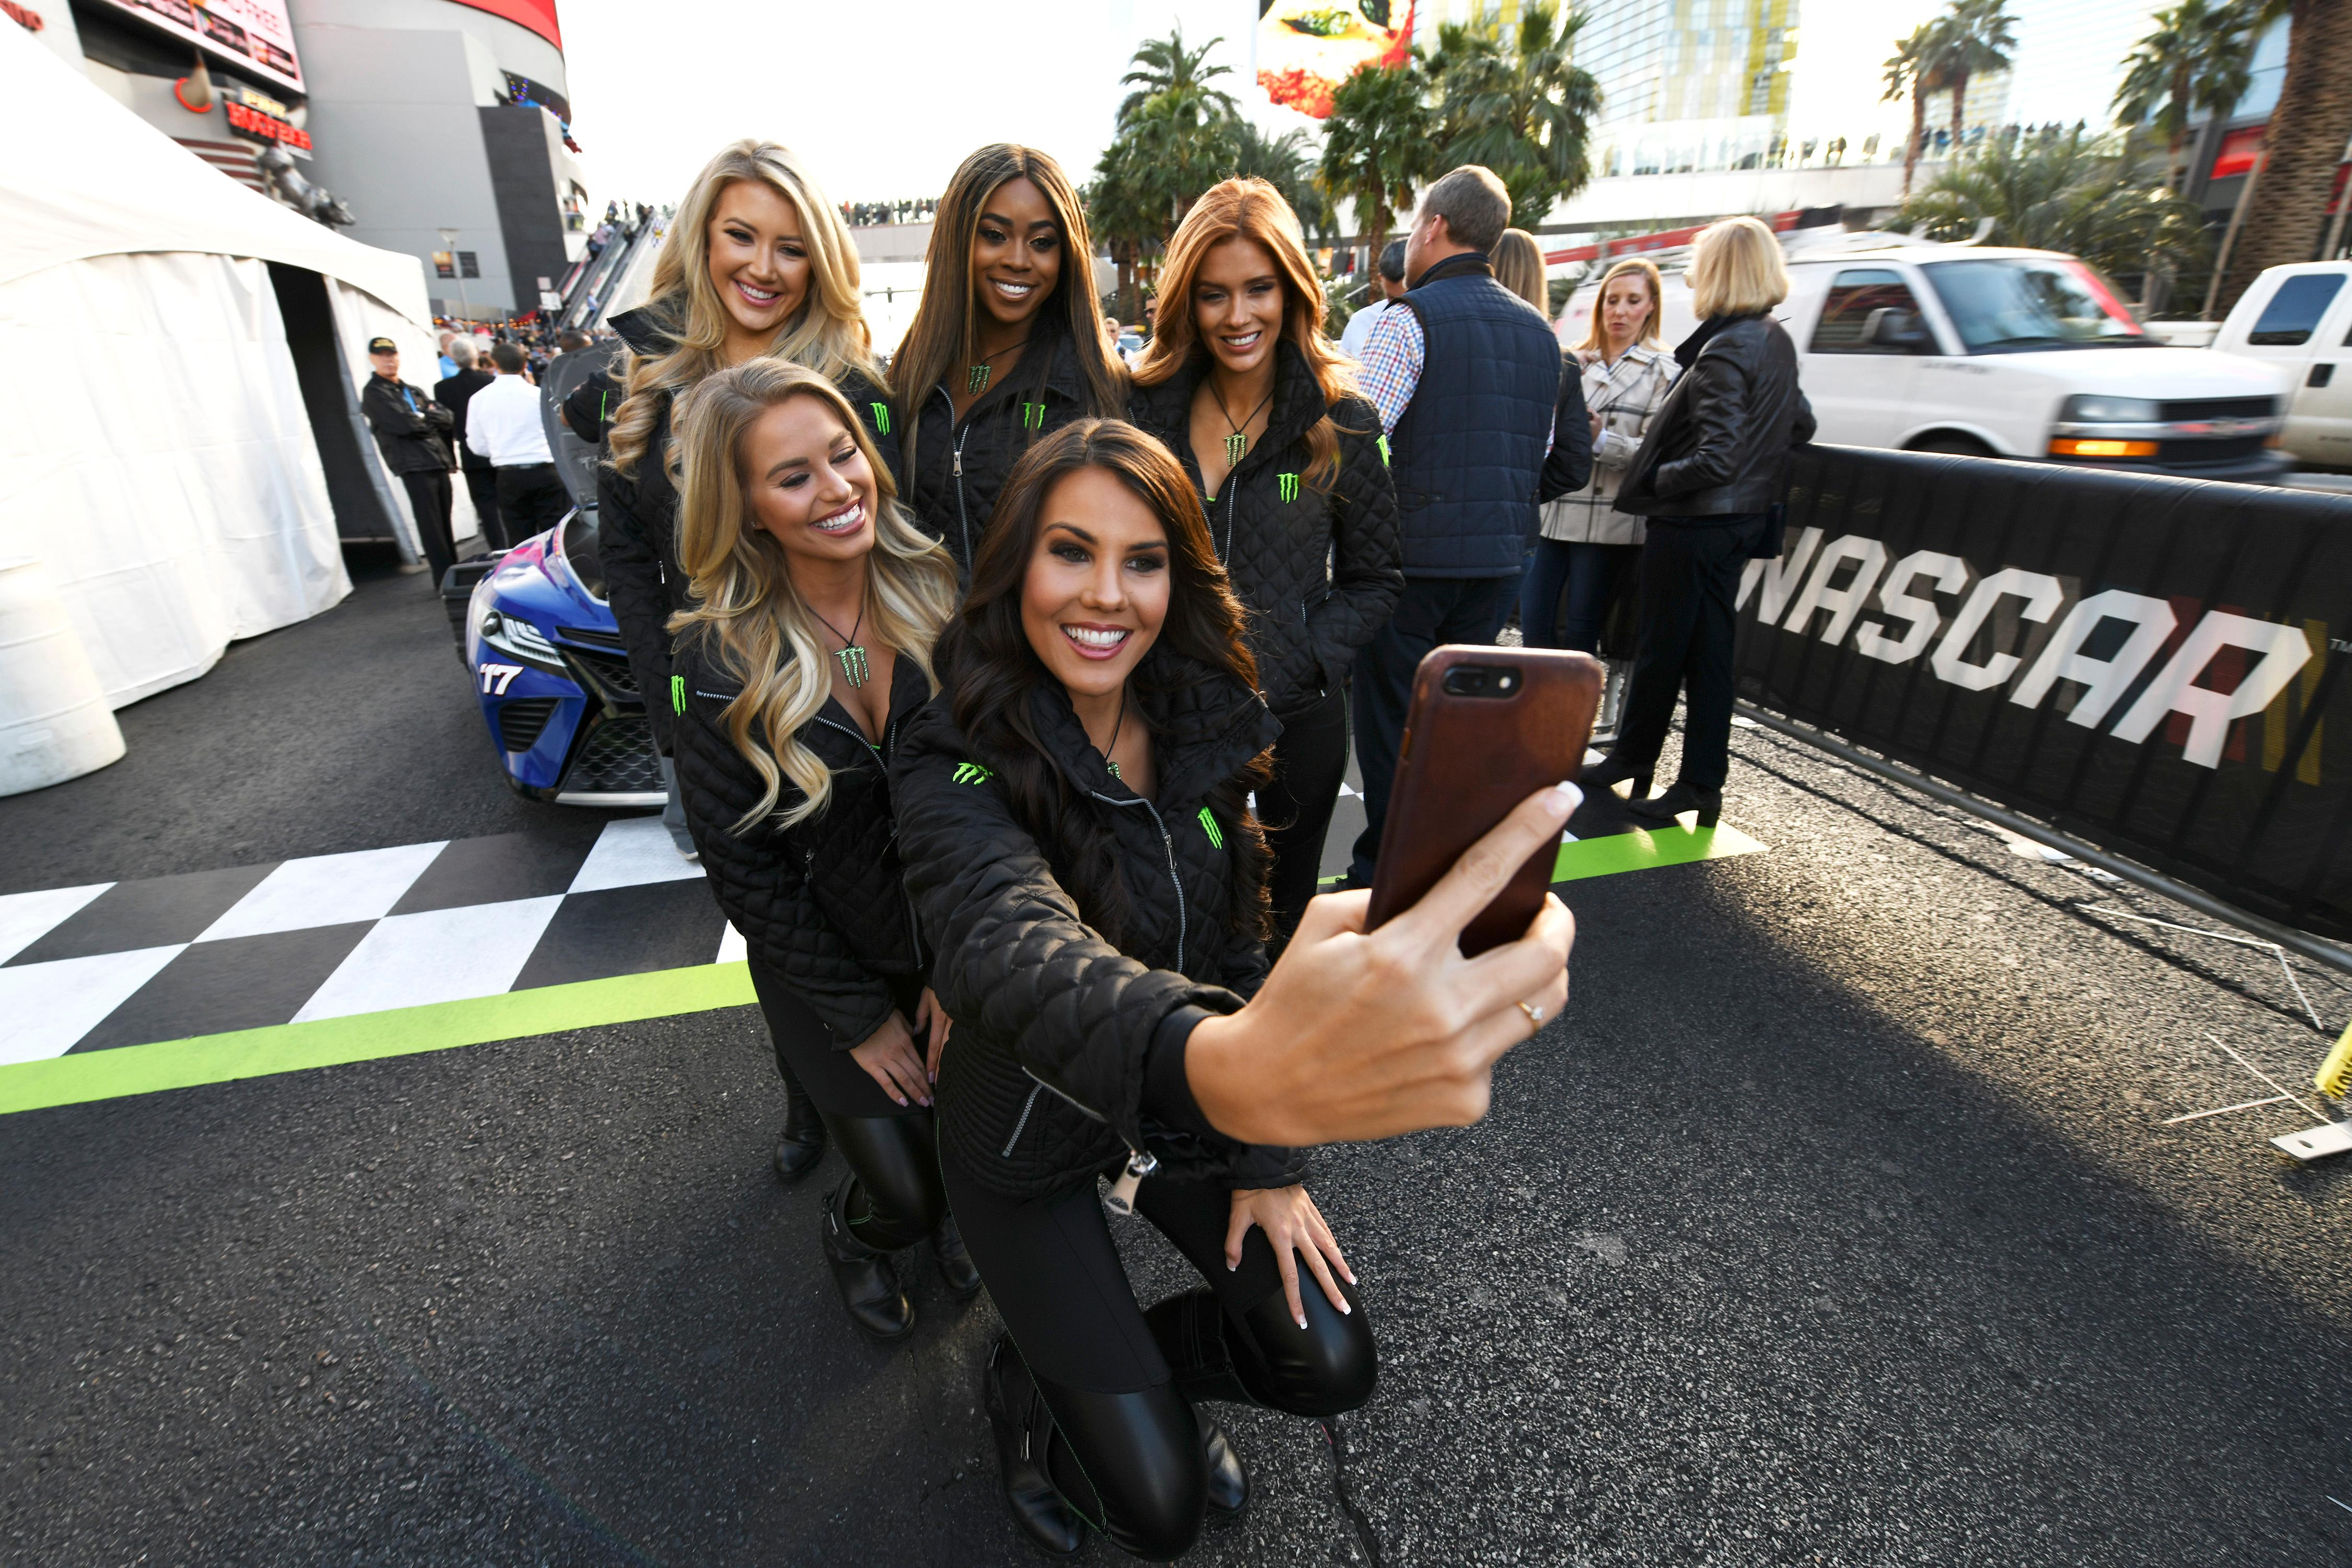 Monster Energy drink models pose for a photo during the NASCAR Victory Lap on the Las Vegas Strip being held as part of Champions Week Wednesday, November 29, 2017. CREDIT: Sam Morris/Las Vegas News Bureau